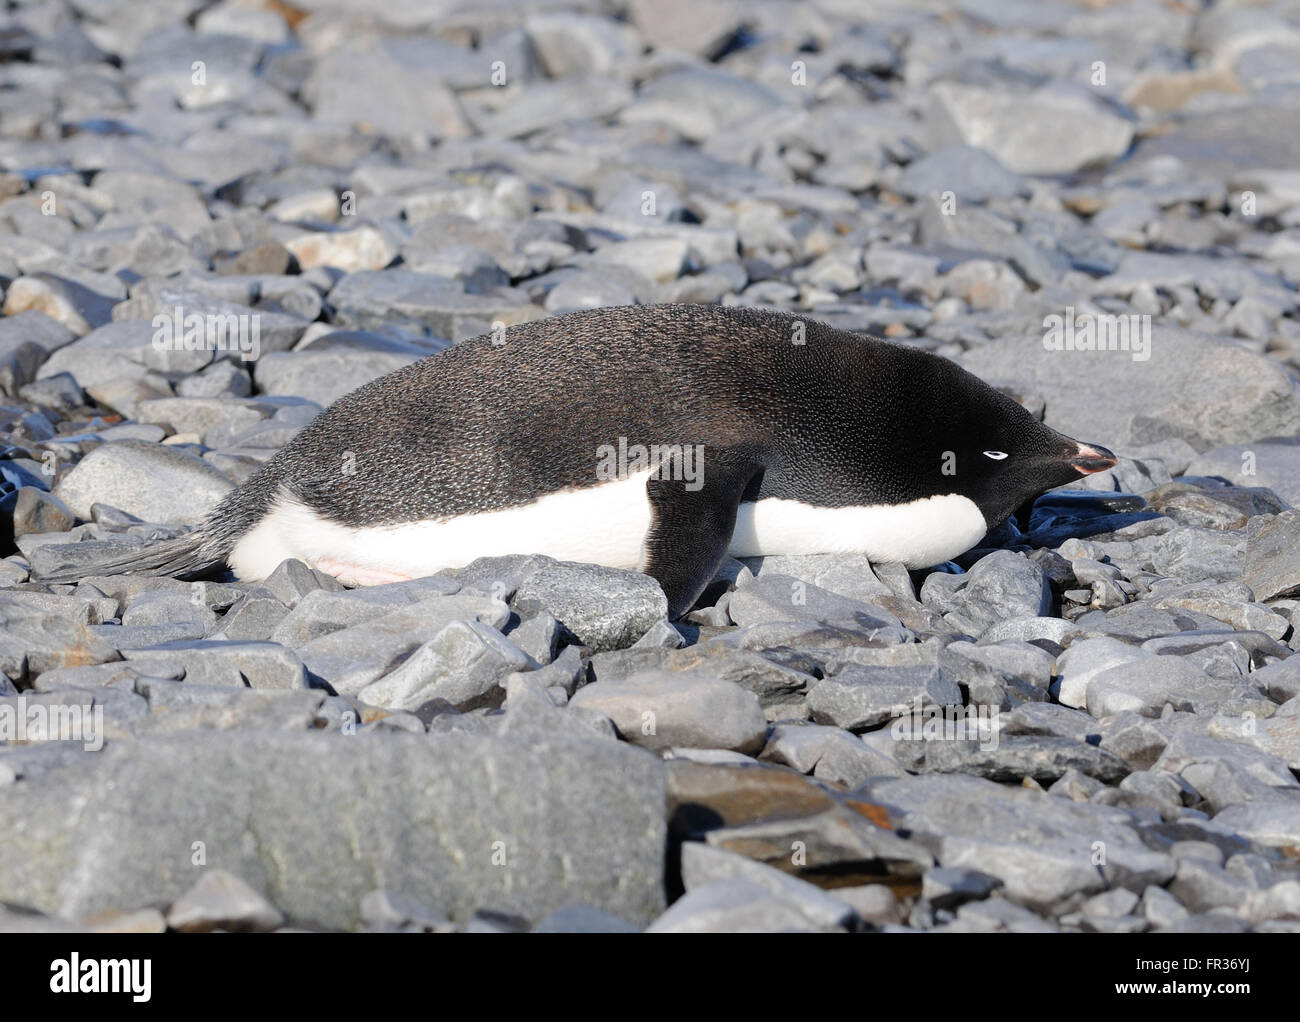 An Adélie penguin (Pygoscelis adeliae) relaxes on the beach at Hope Bay. Hope Bay, Antarctica. - Stock Image